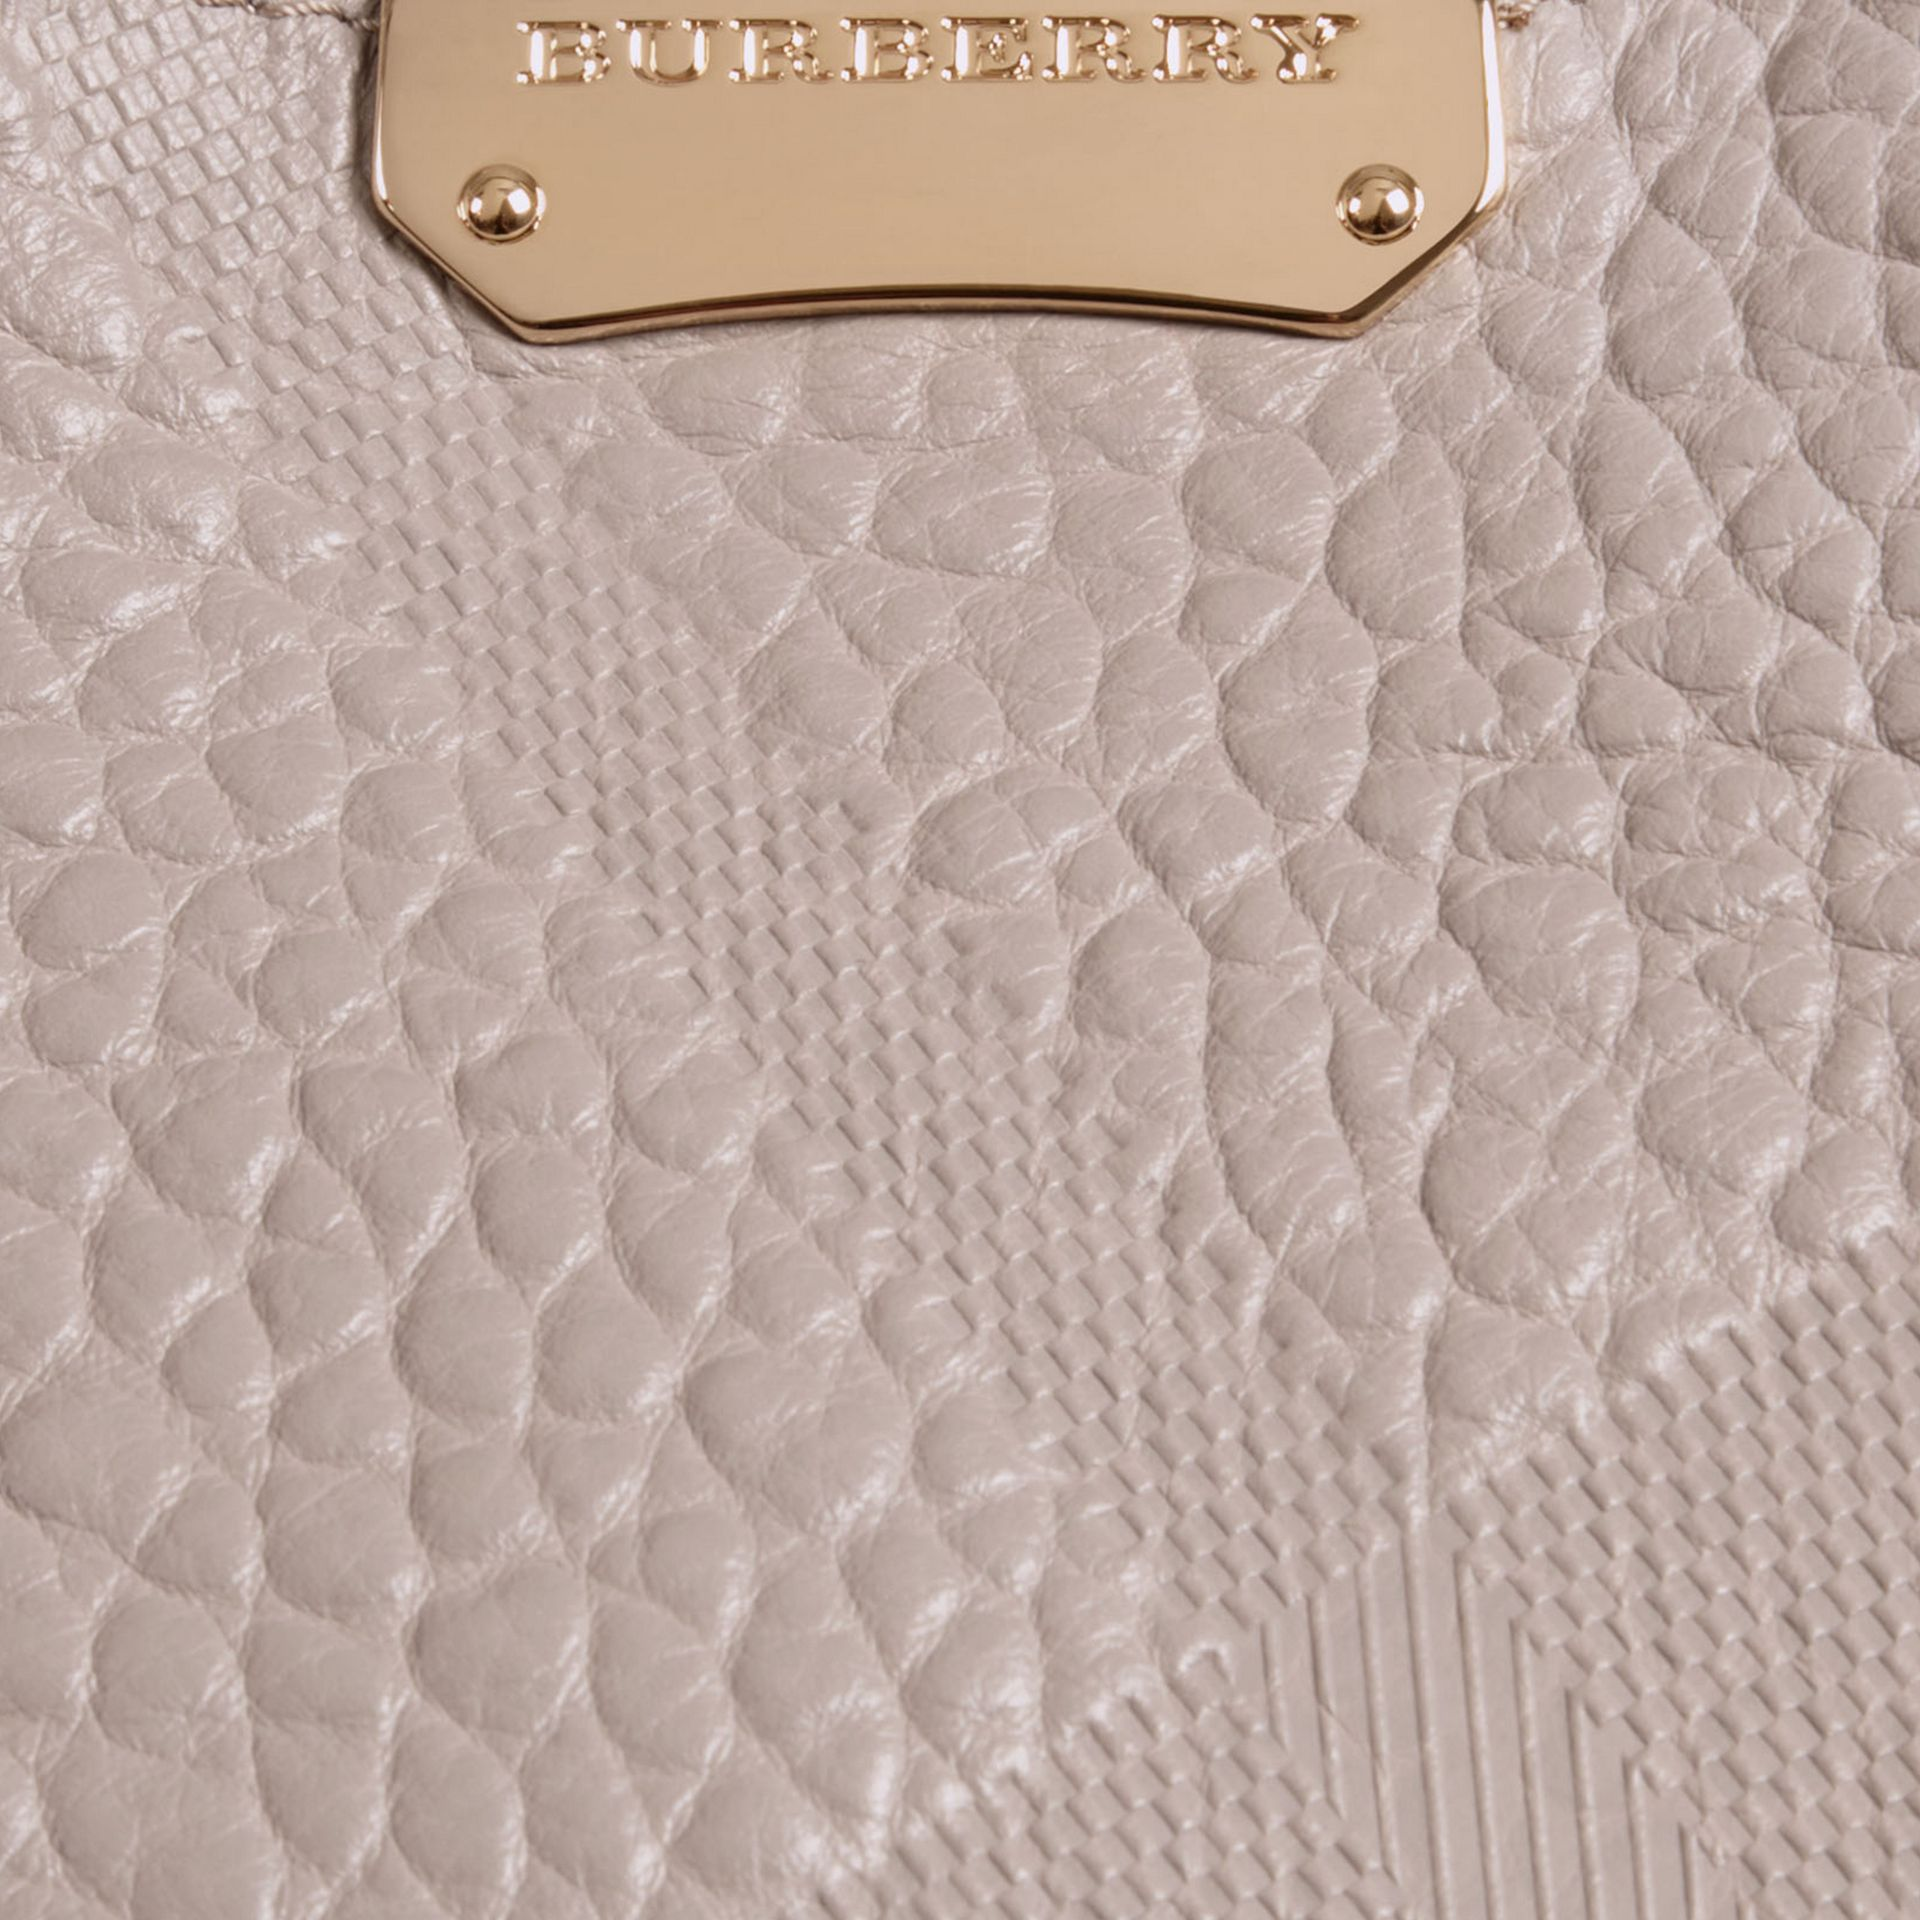 Pale grey The Small Canter in Check Embossed Leather Pale Grey - gallery image 2